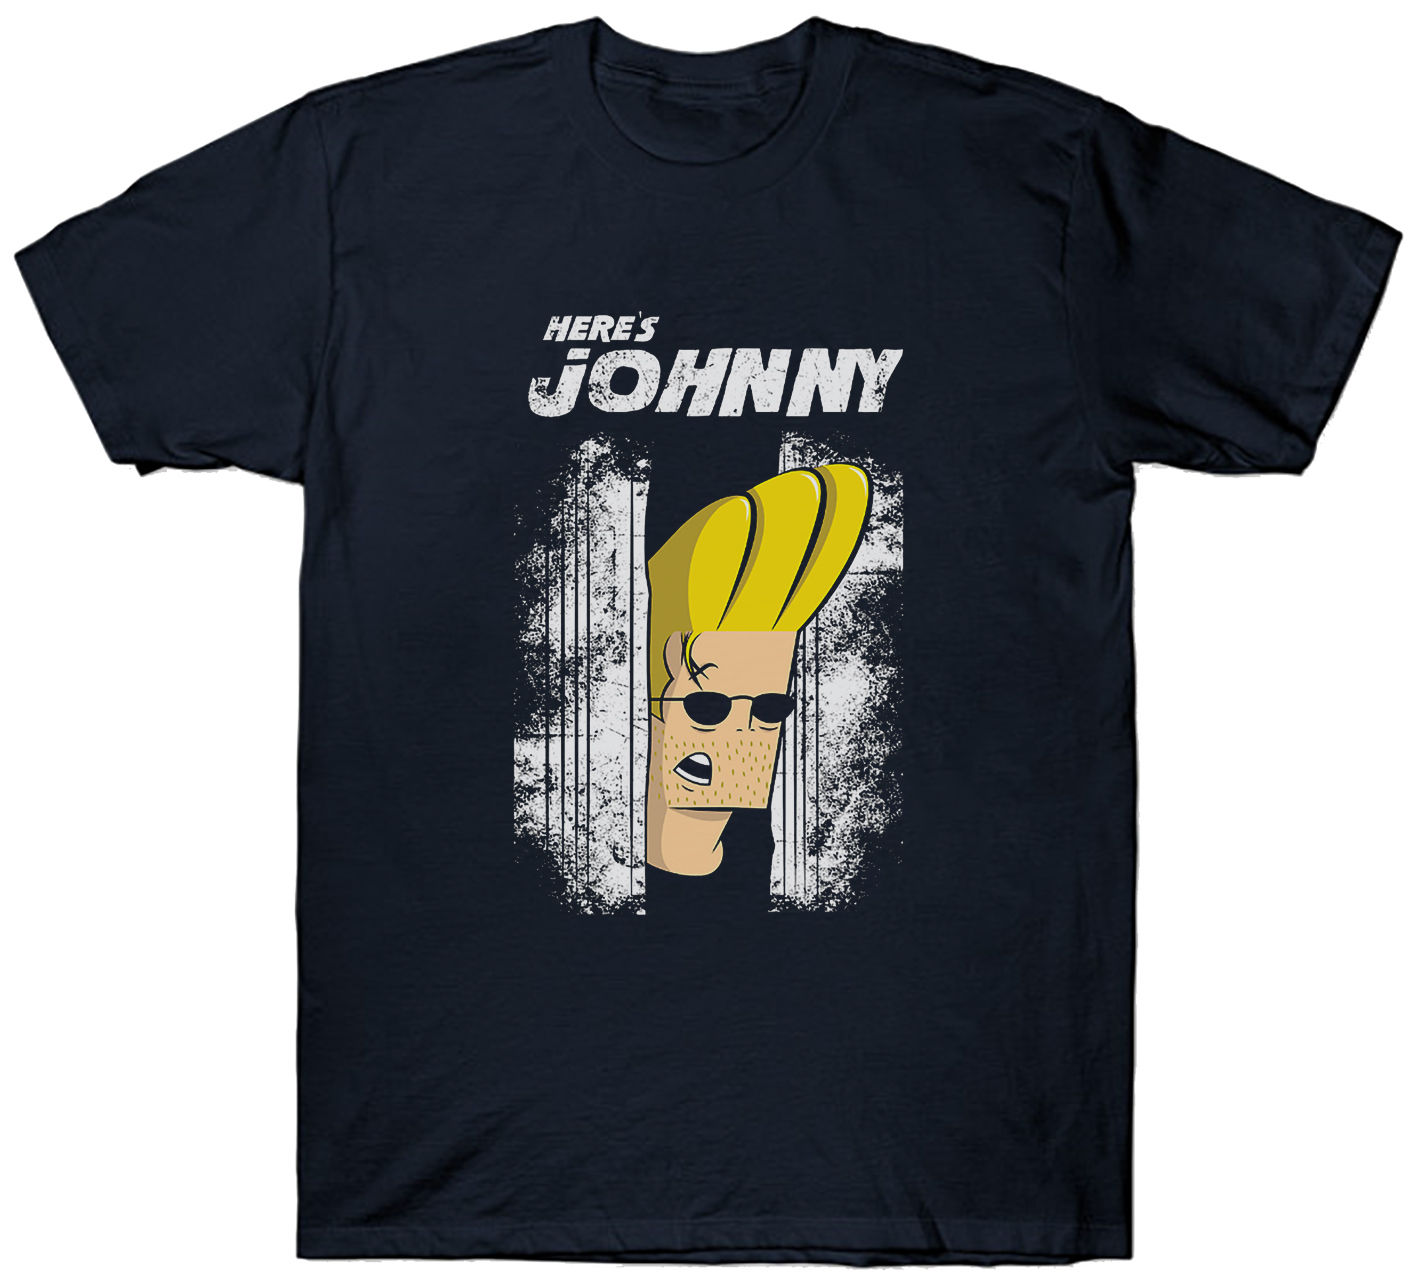 JOHNNY BRAVO T SHIRT HERE'S JOHNNY THE SHINING PARODY PUN JOKE Cartoon t shirt men Unisex New Fashion tshirt Loose Size top image